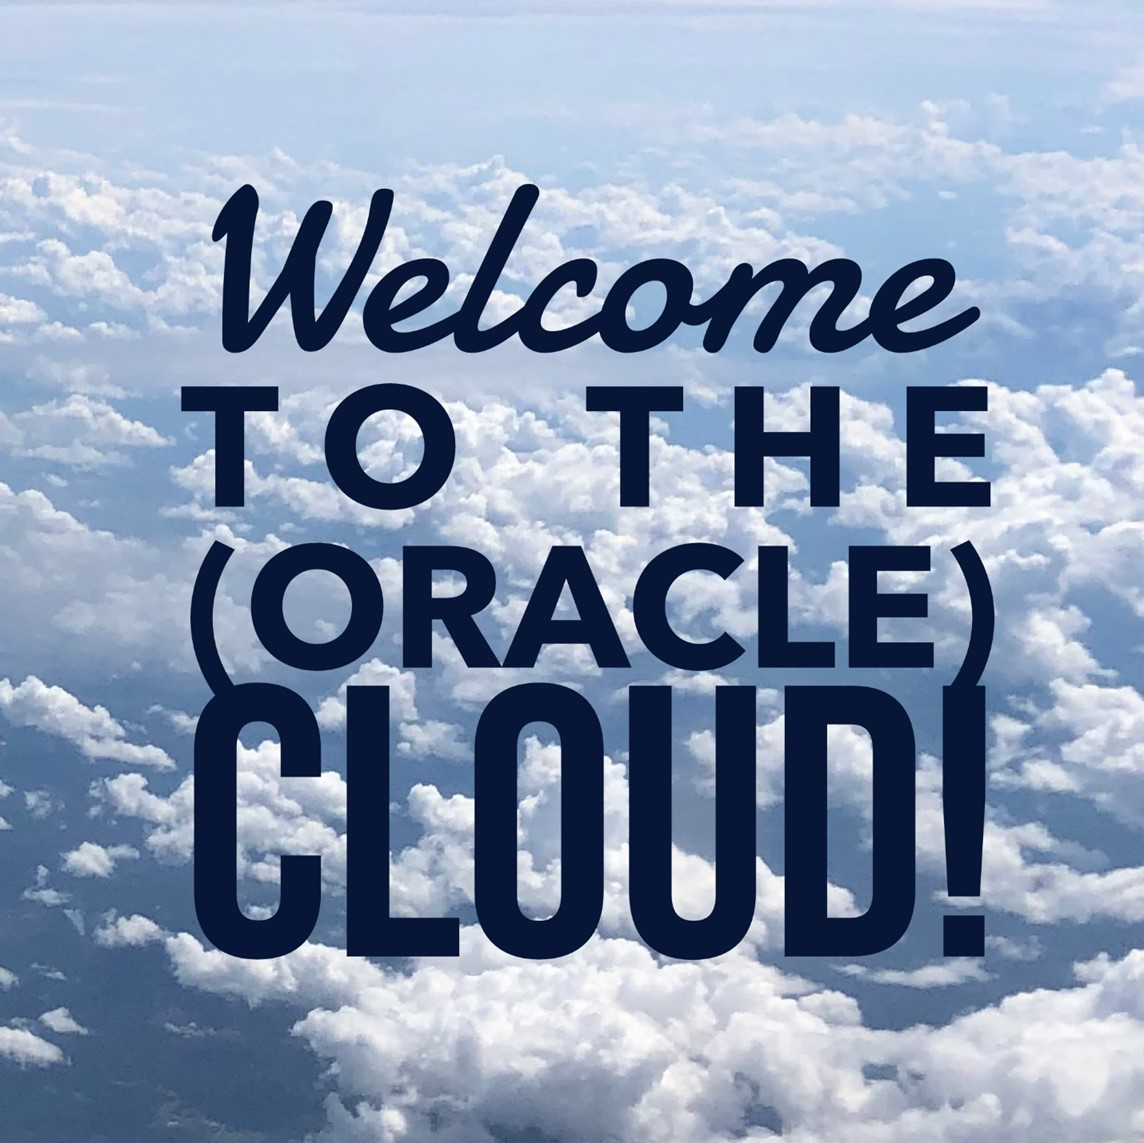 welcome oracle